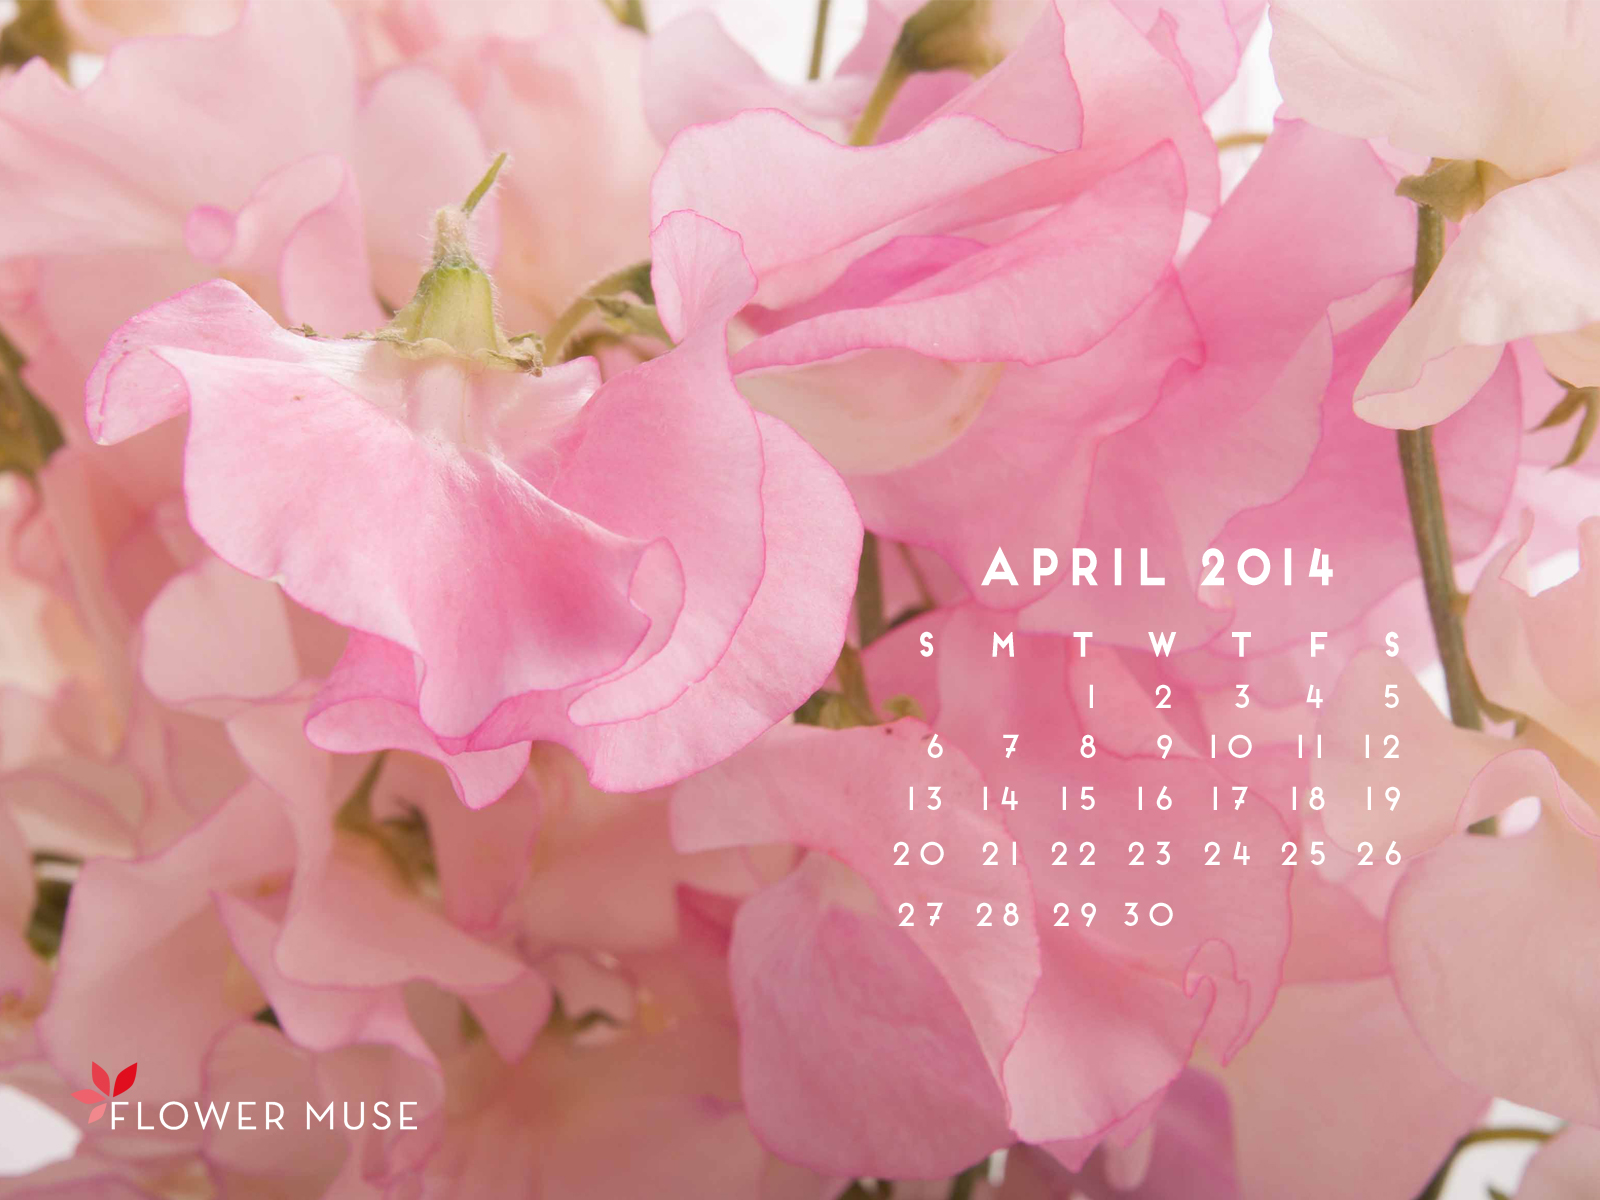 April 2014 Calendar Flower Muse Blog 1600x1200